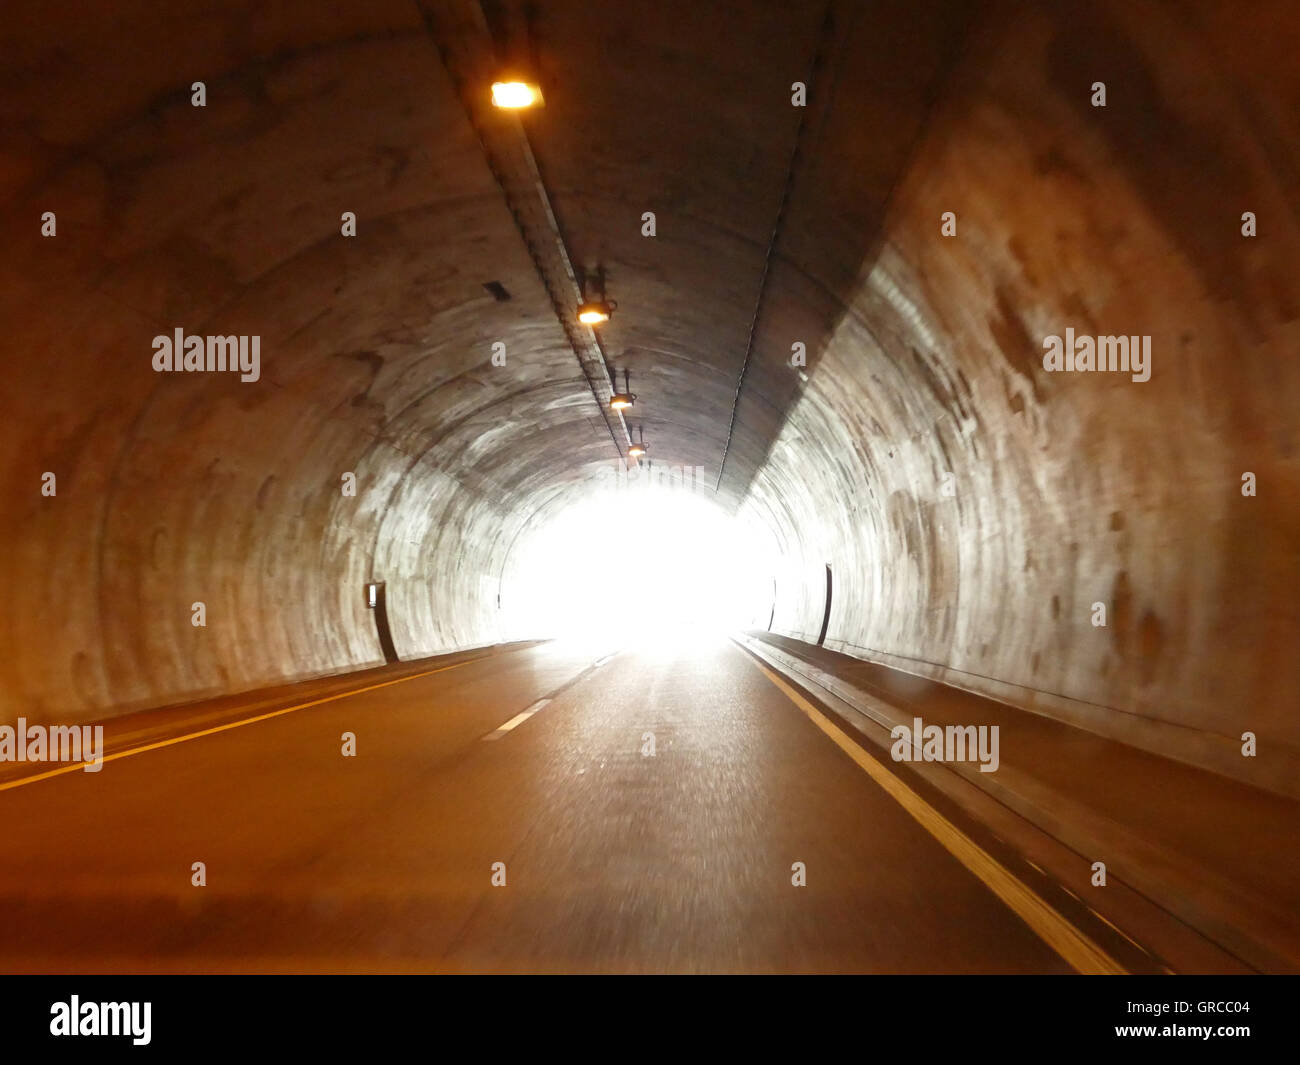 Glare Light At The End Of The Tunnel, Symbol For Gleam Of Hope, Dying, Belief - Stock Image